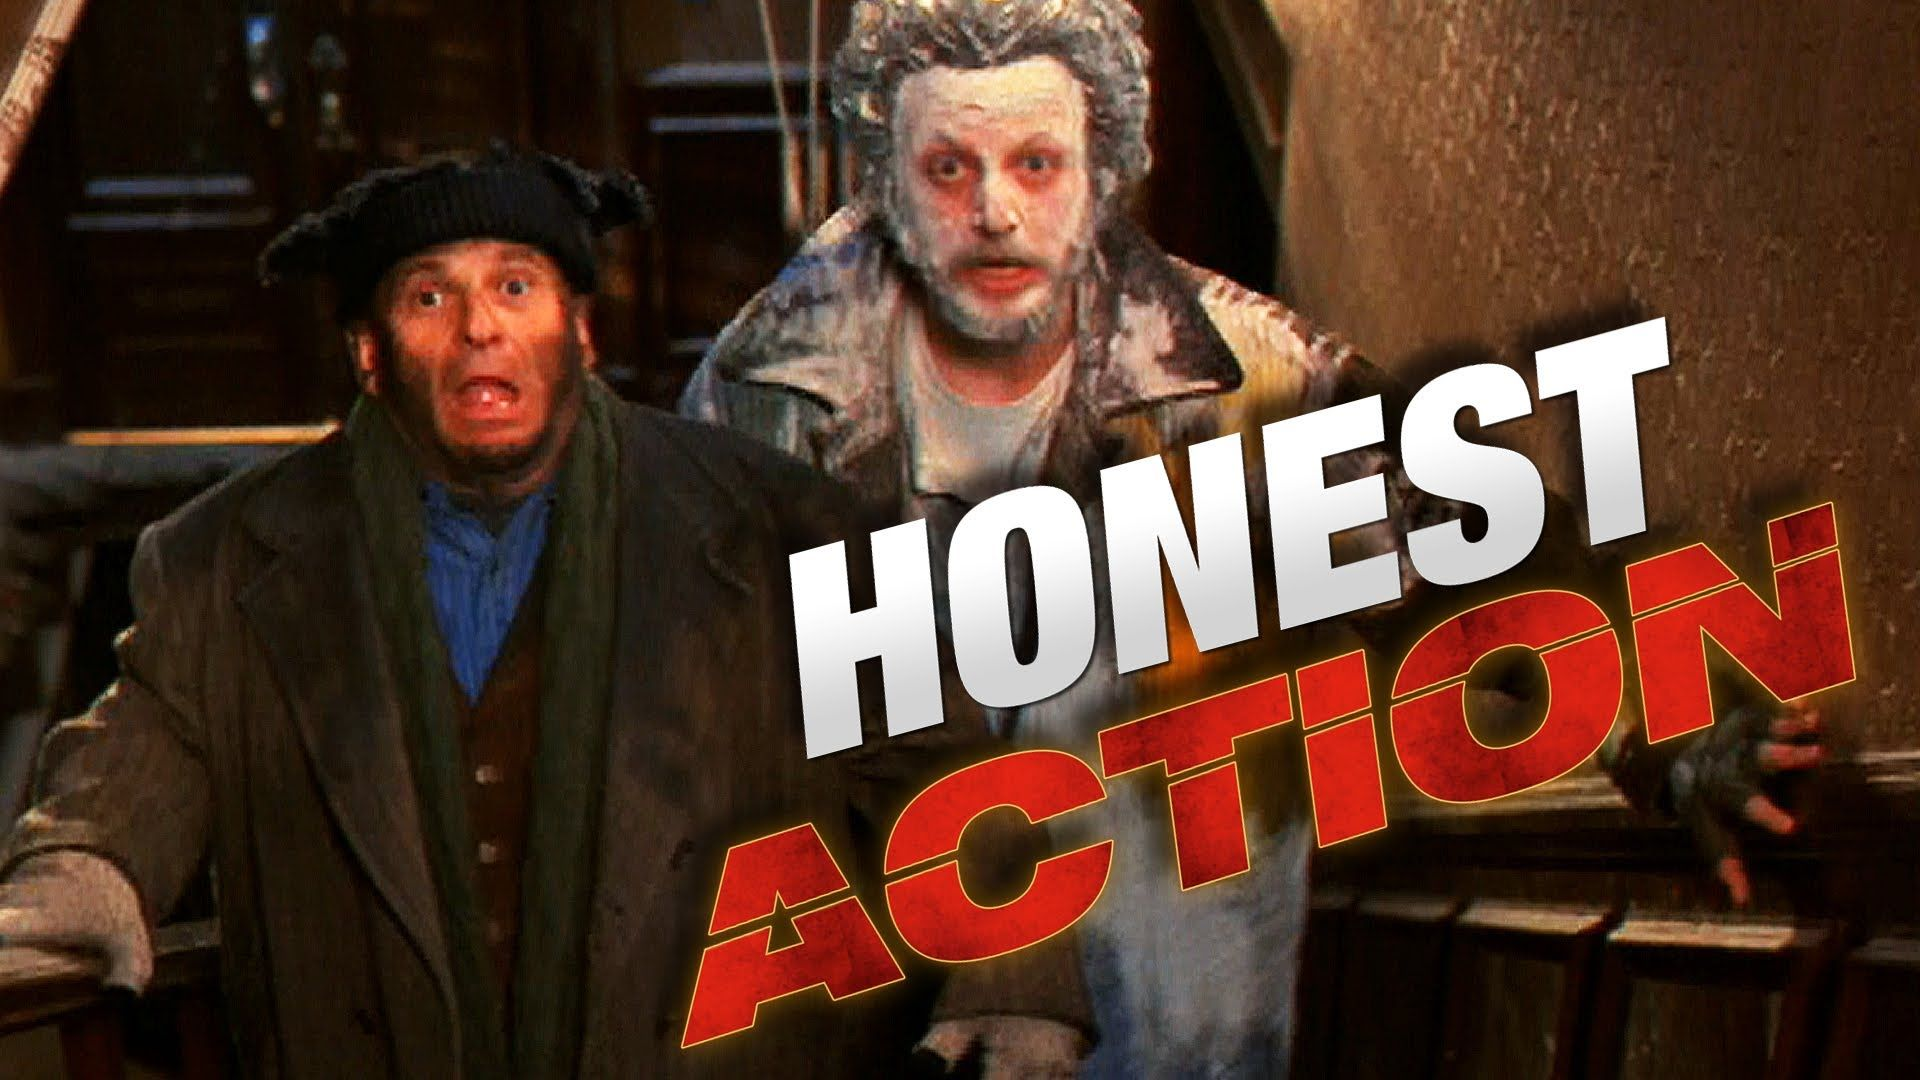 Home alone funny pictures with the bad guys.